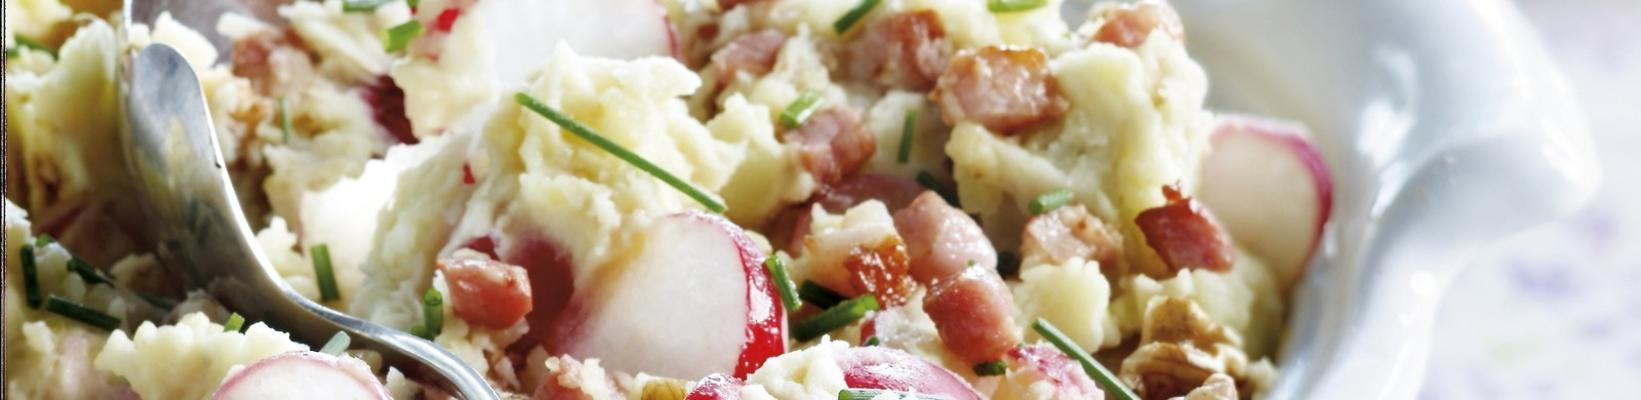 radish stew with bacon and nuts